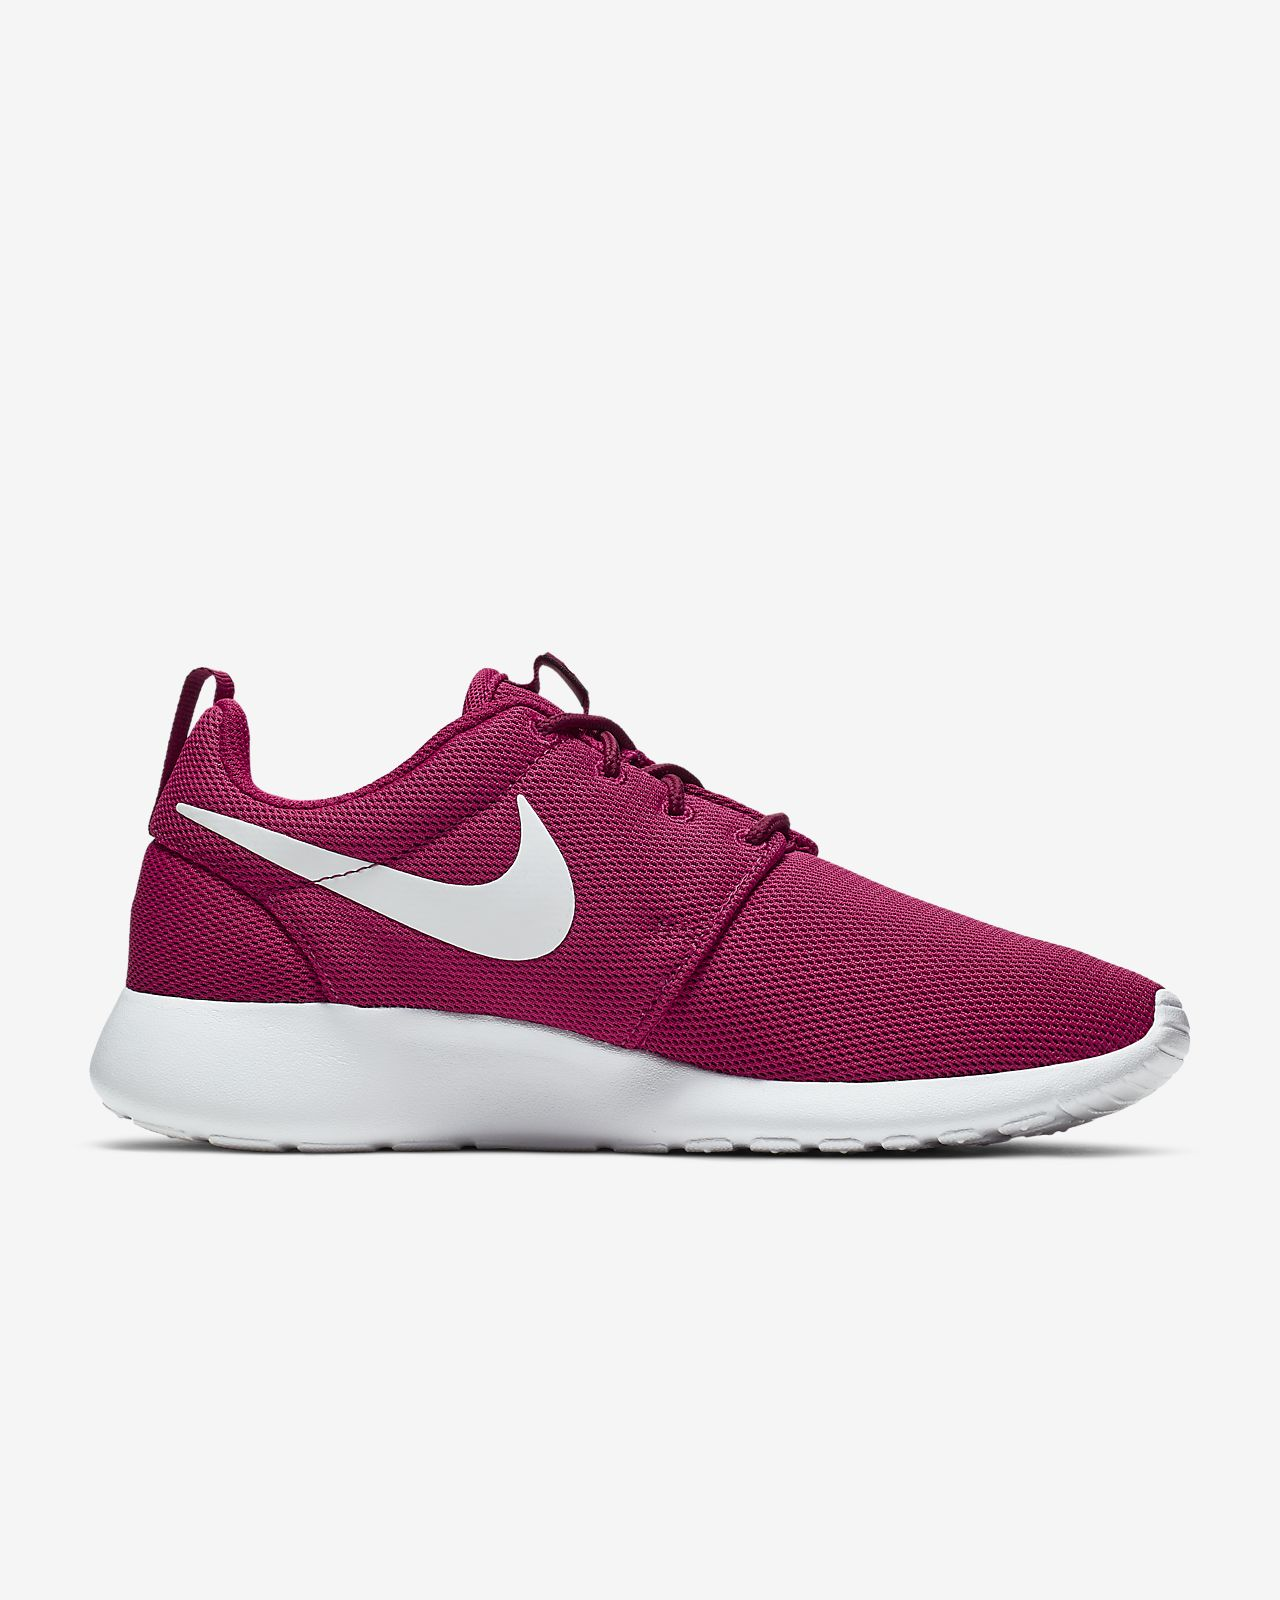 the latest 1fdac 88e66 Nike Roshe One Women's Shoe